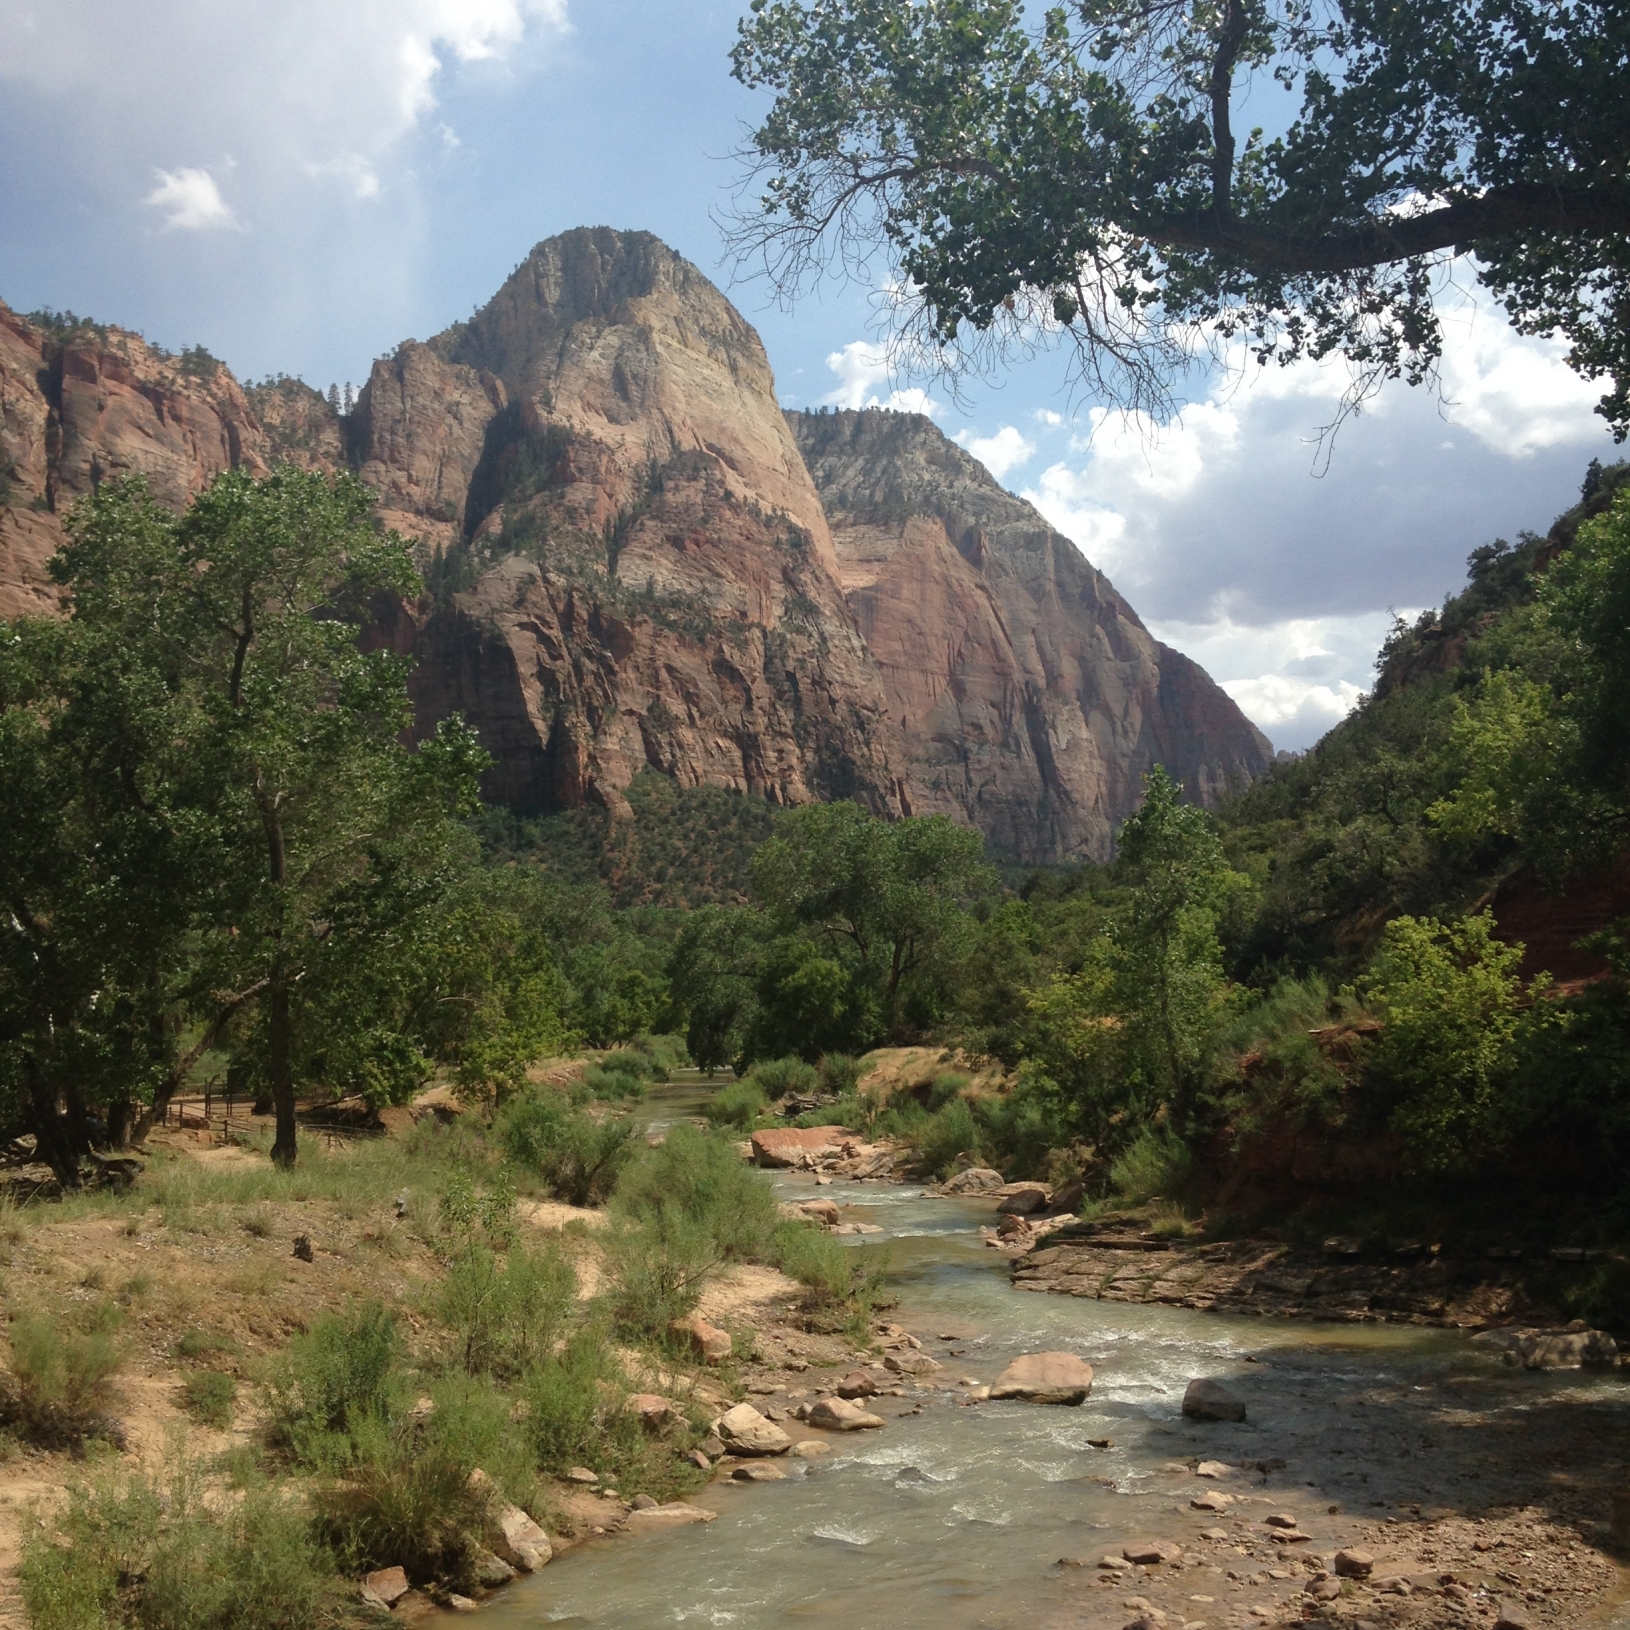 Watchman in Zion National Park